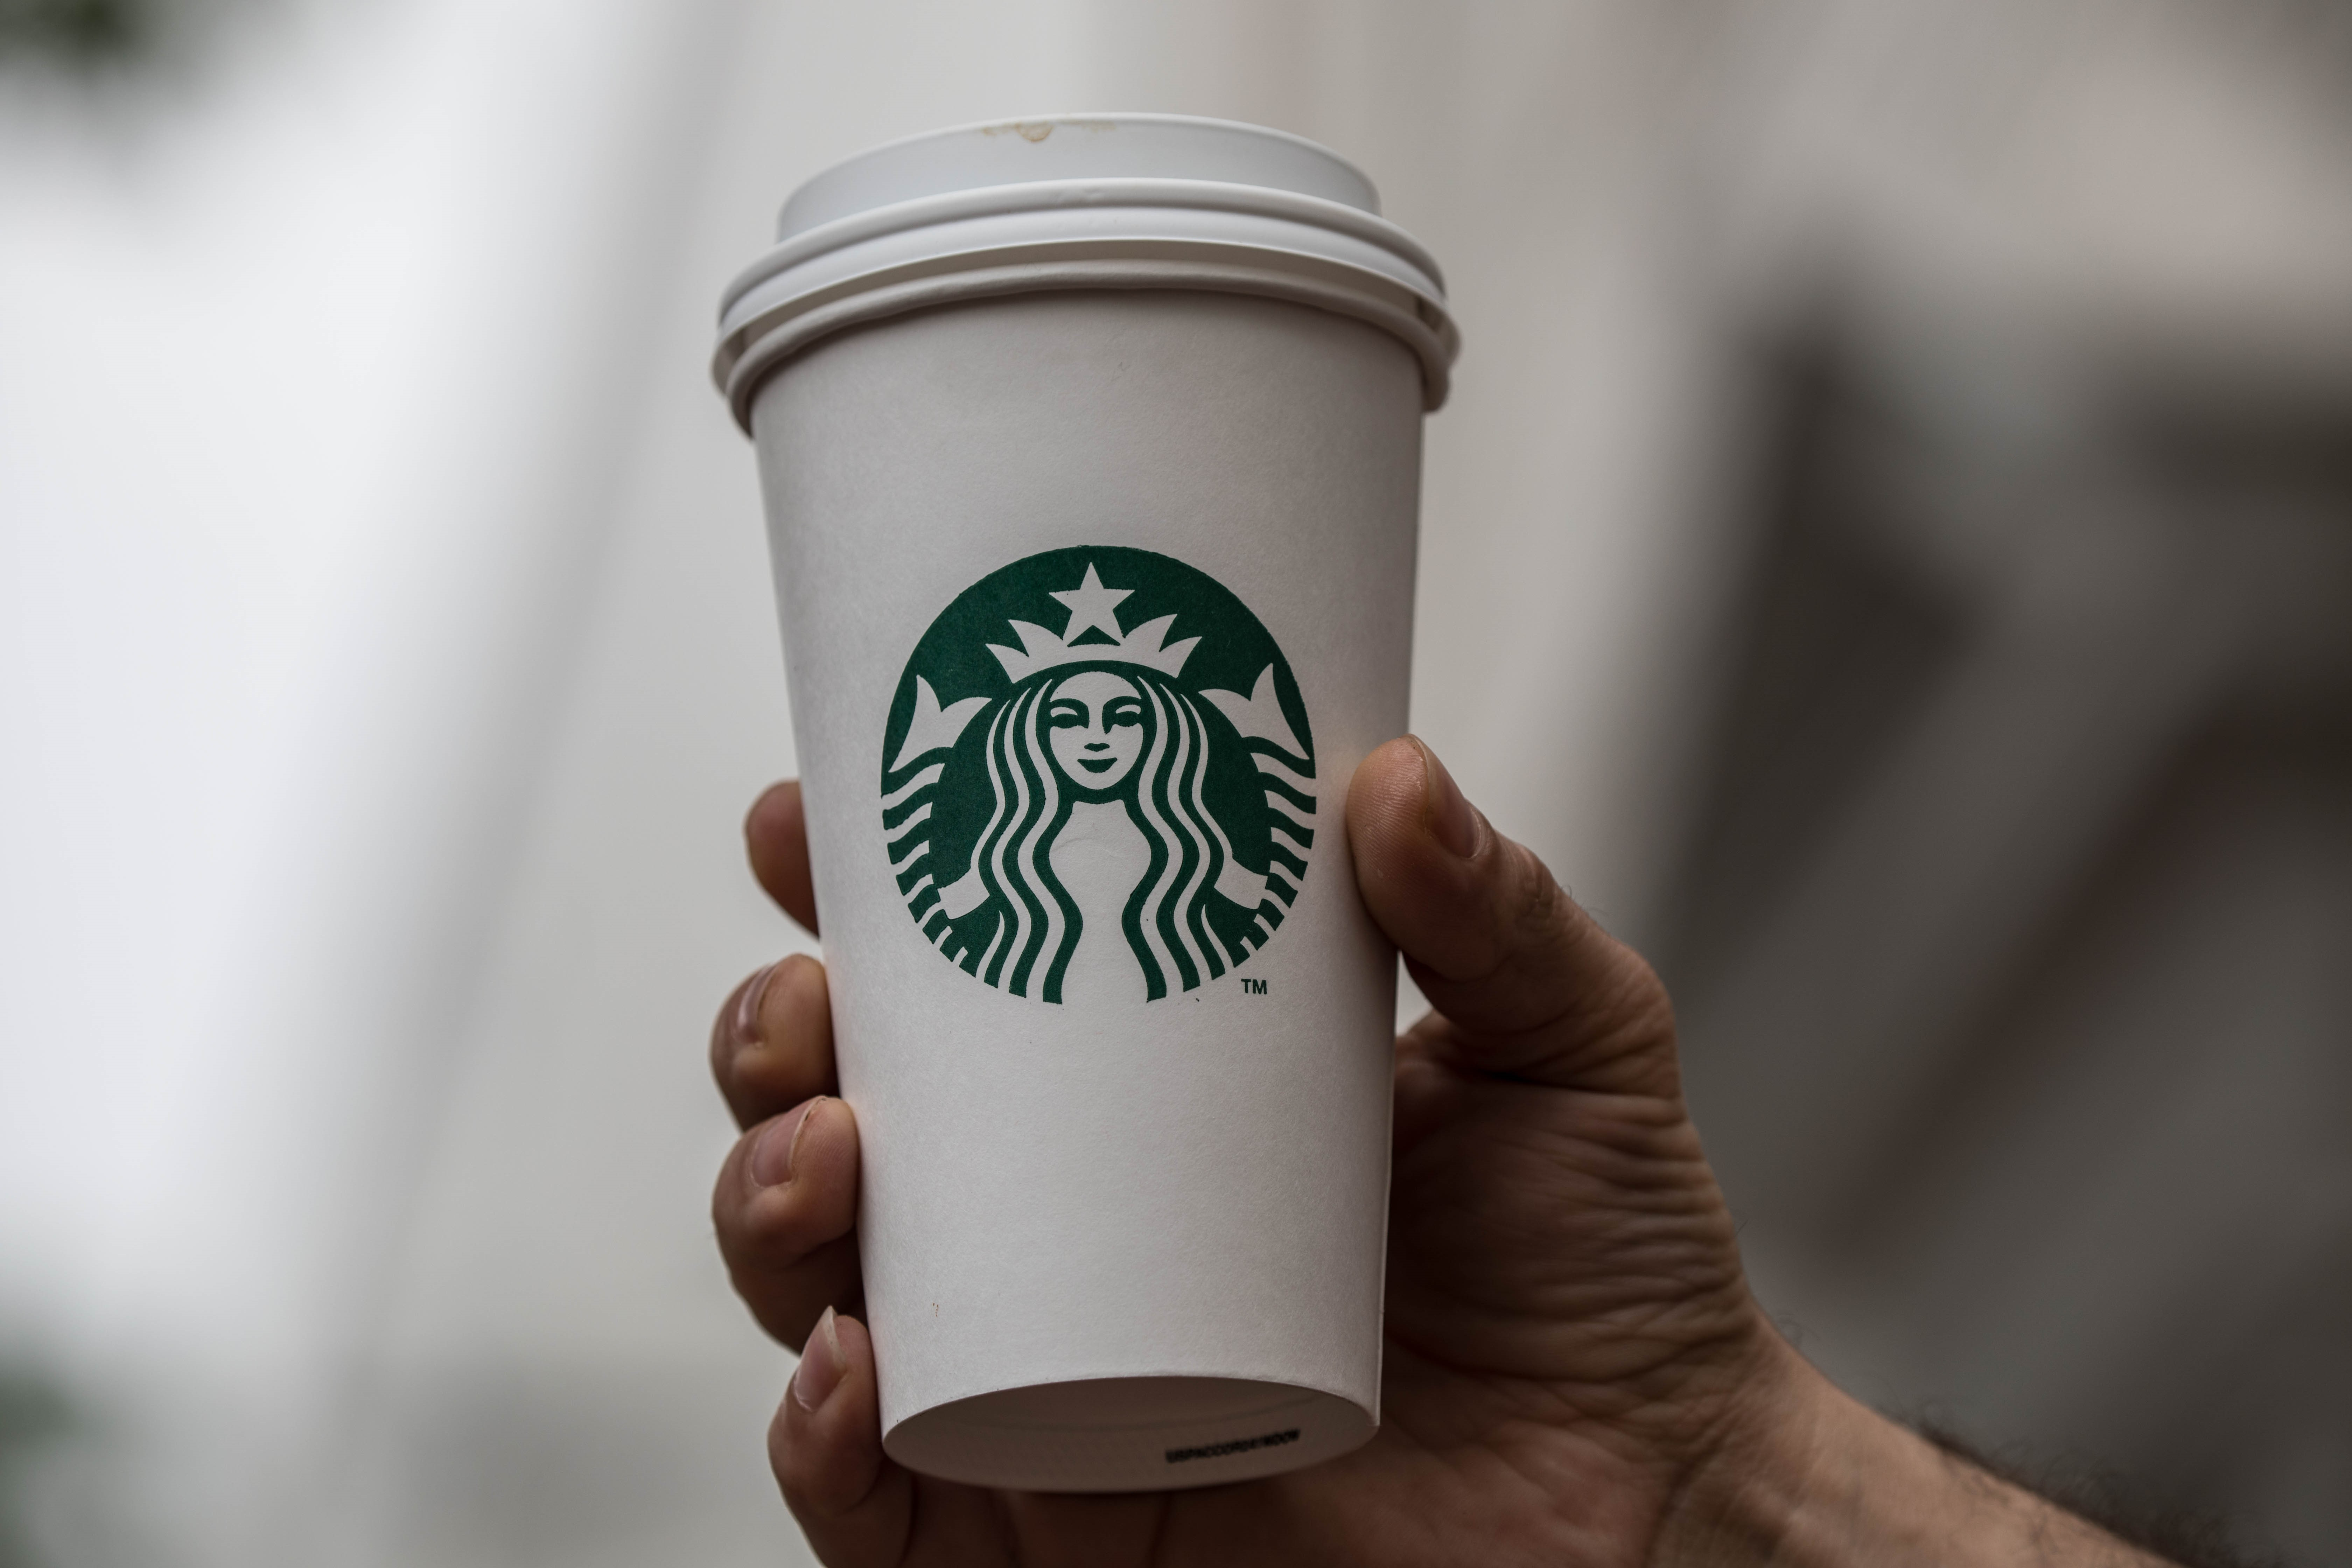 Starbucks to close over 8000 stores for Bias Training